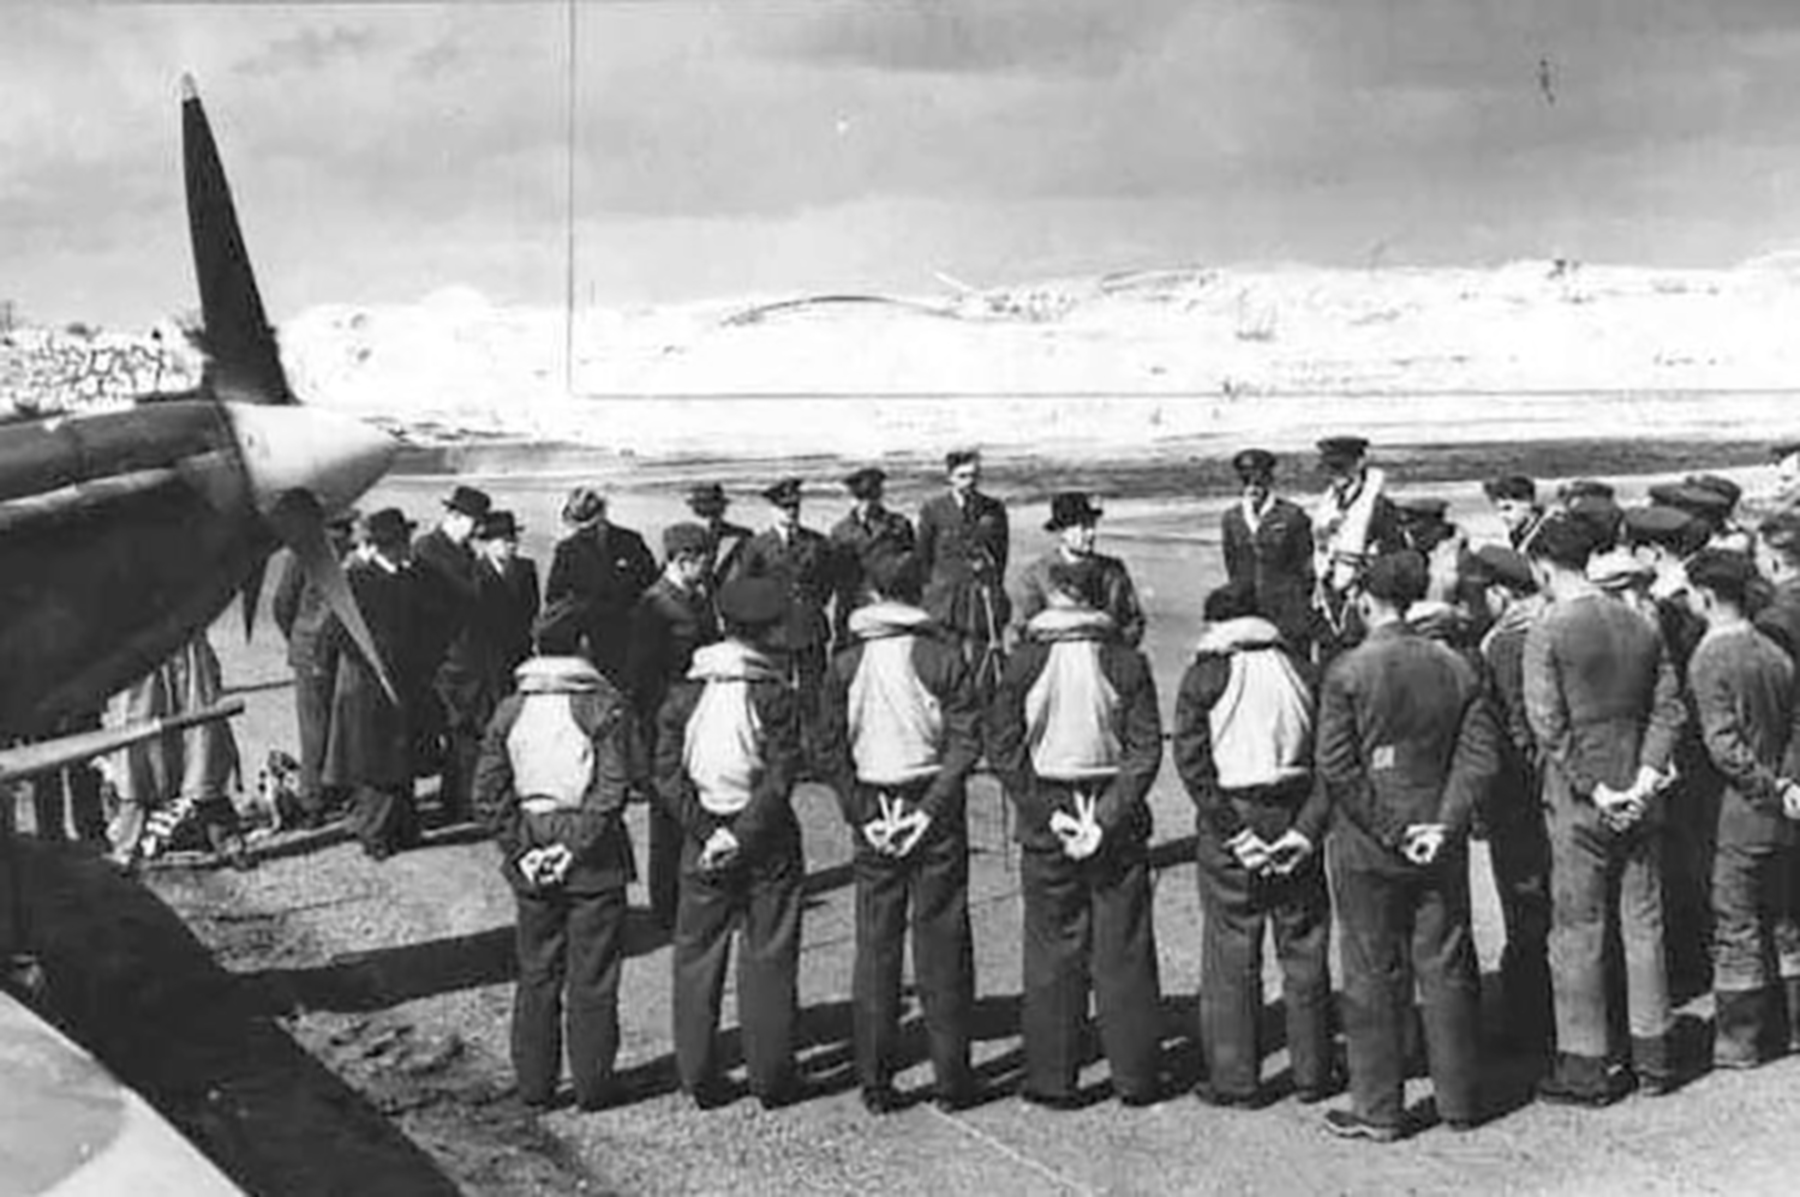 Aircrew RAF 234Sqn ceremony at RAF Station Ibsley 10th April 1942 01